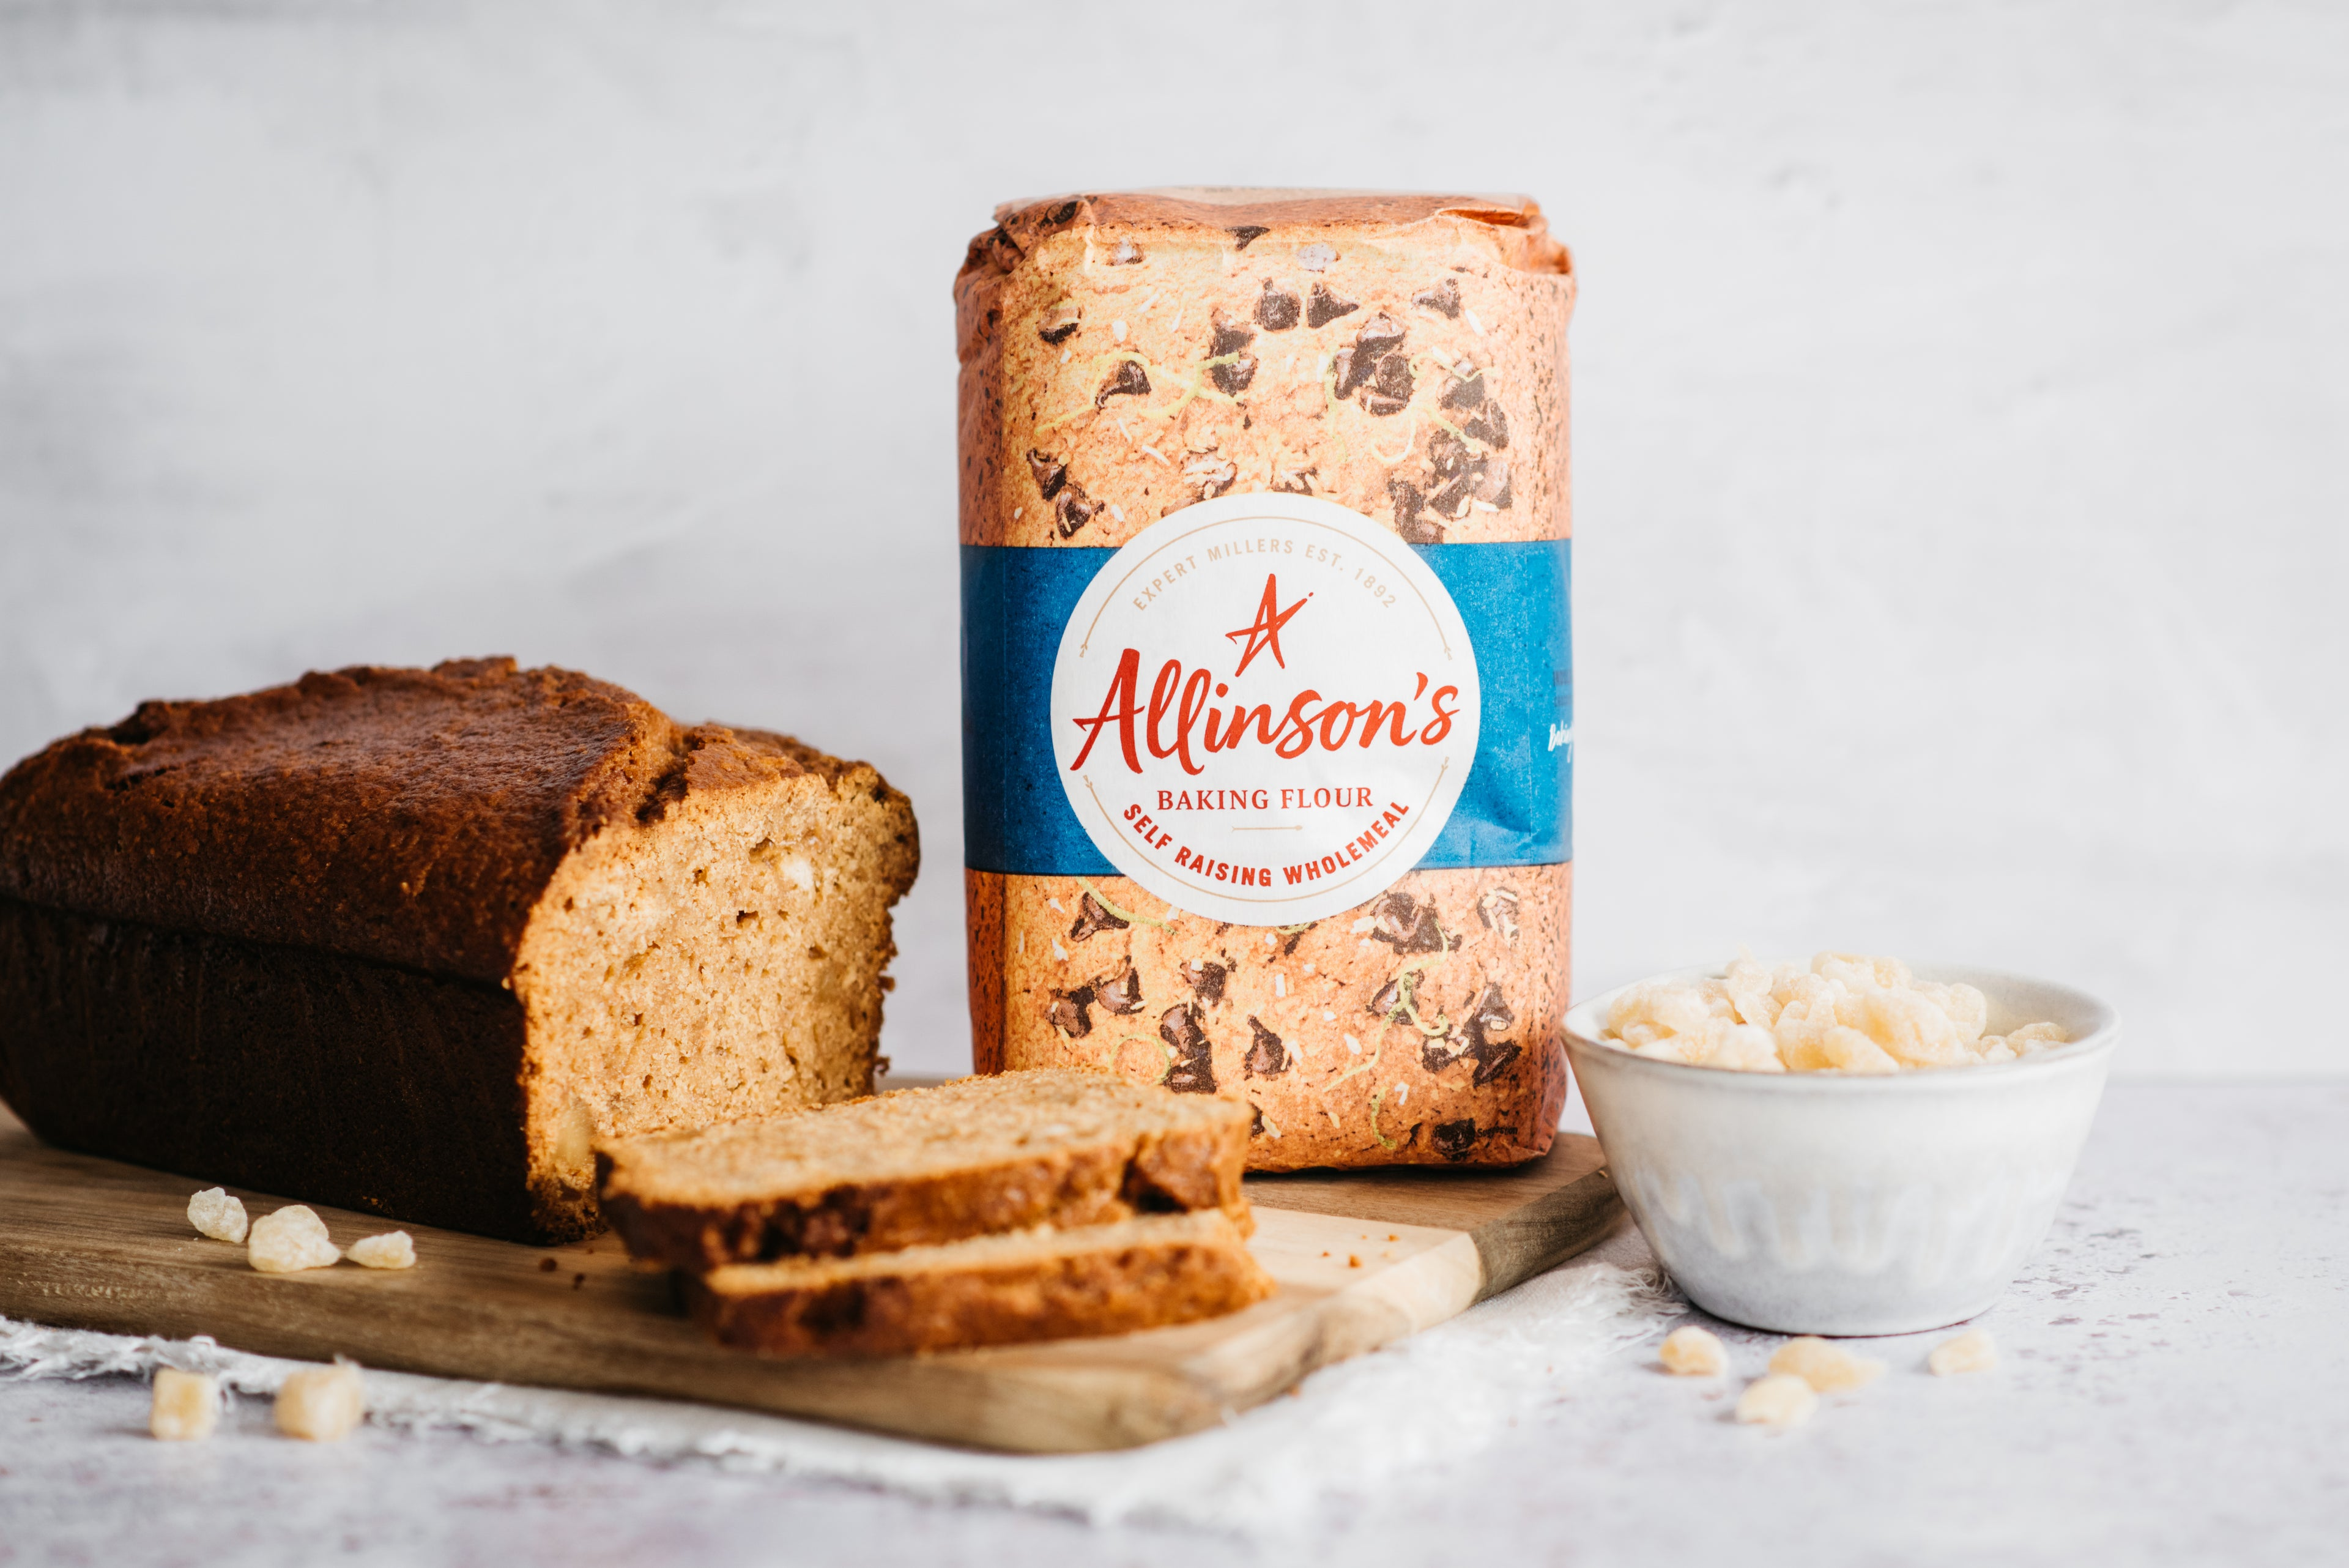 Gingerbread Loaf sliced on a wooden serving board, next to a bag of Allinson's self raising flour and a bowl of crystallised ginger